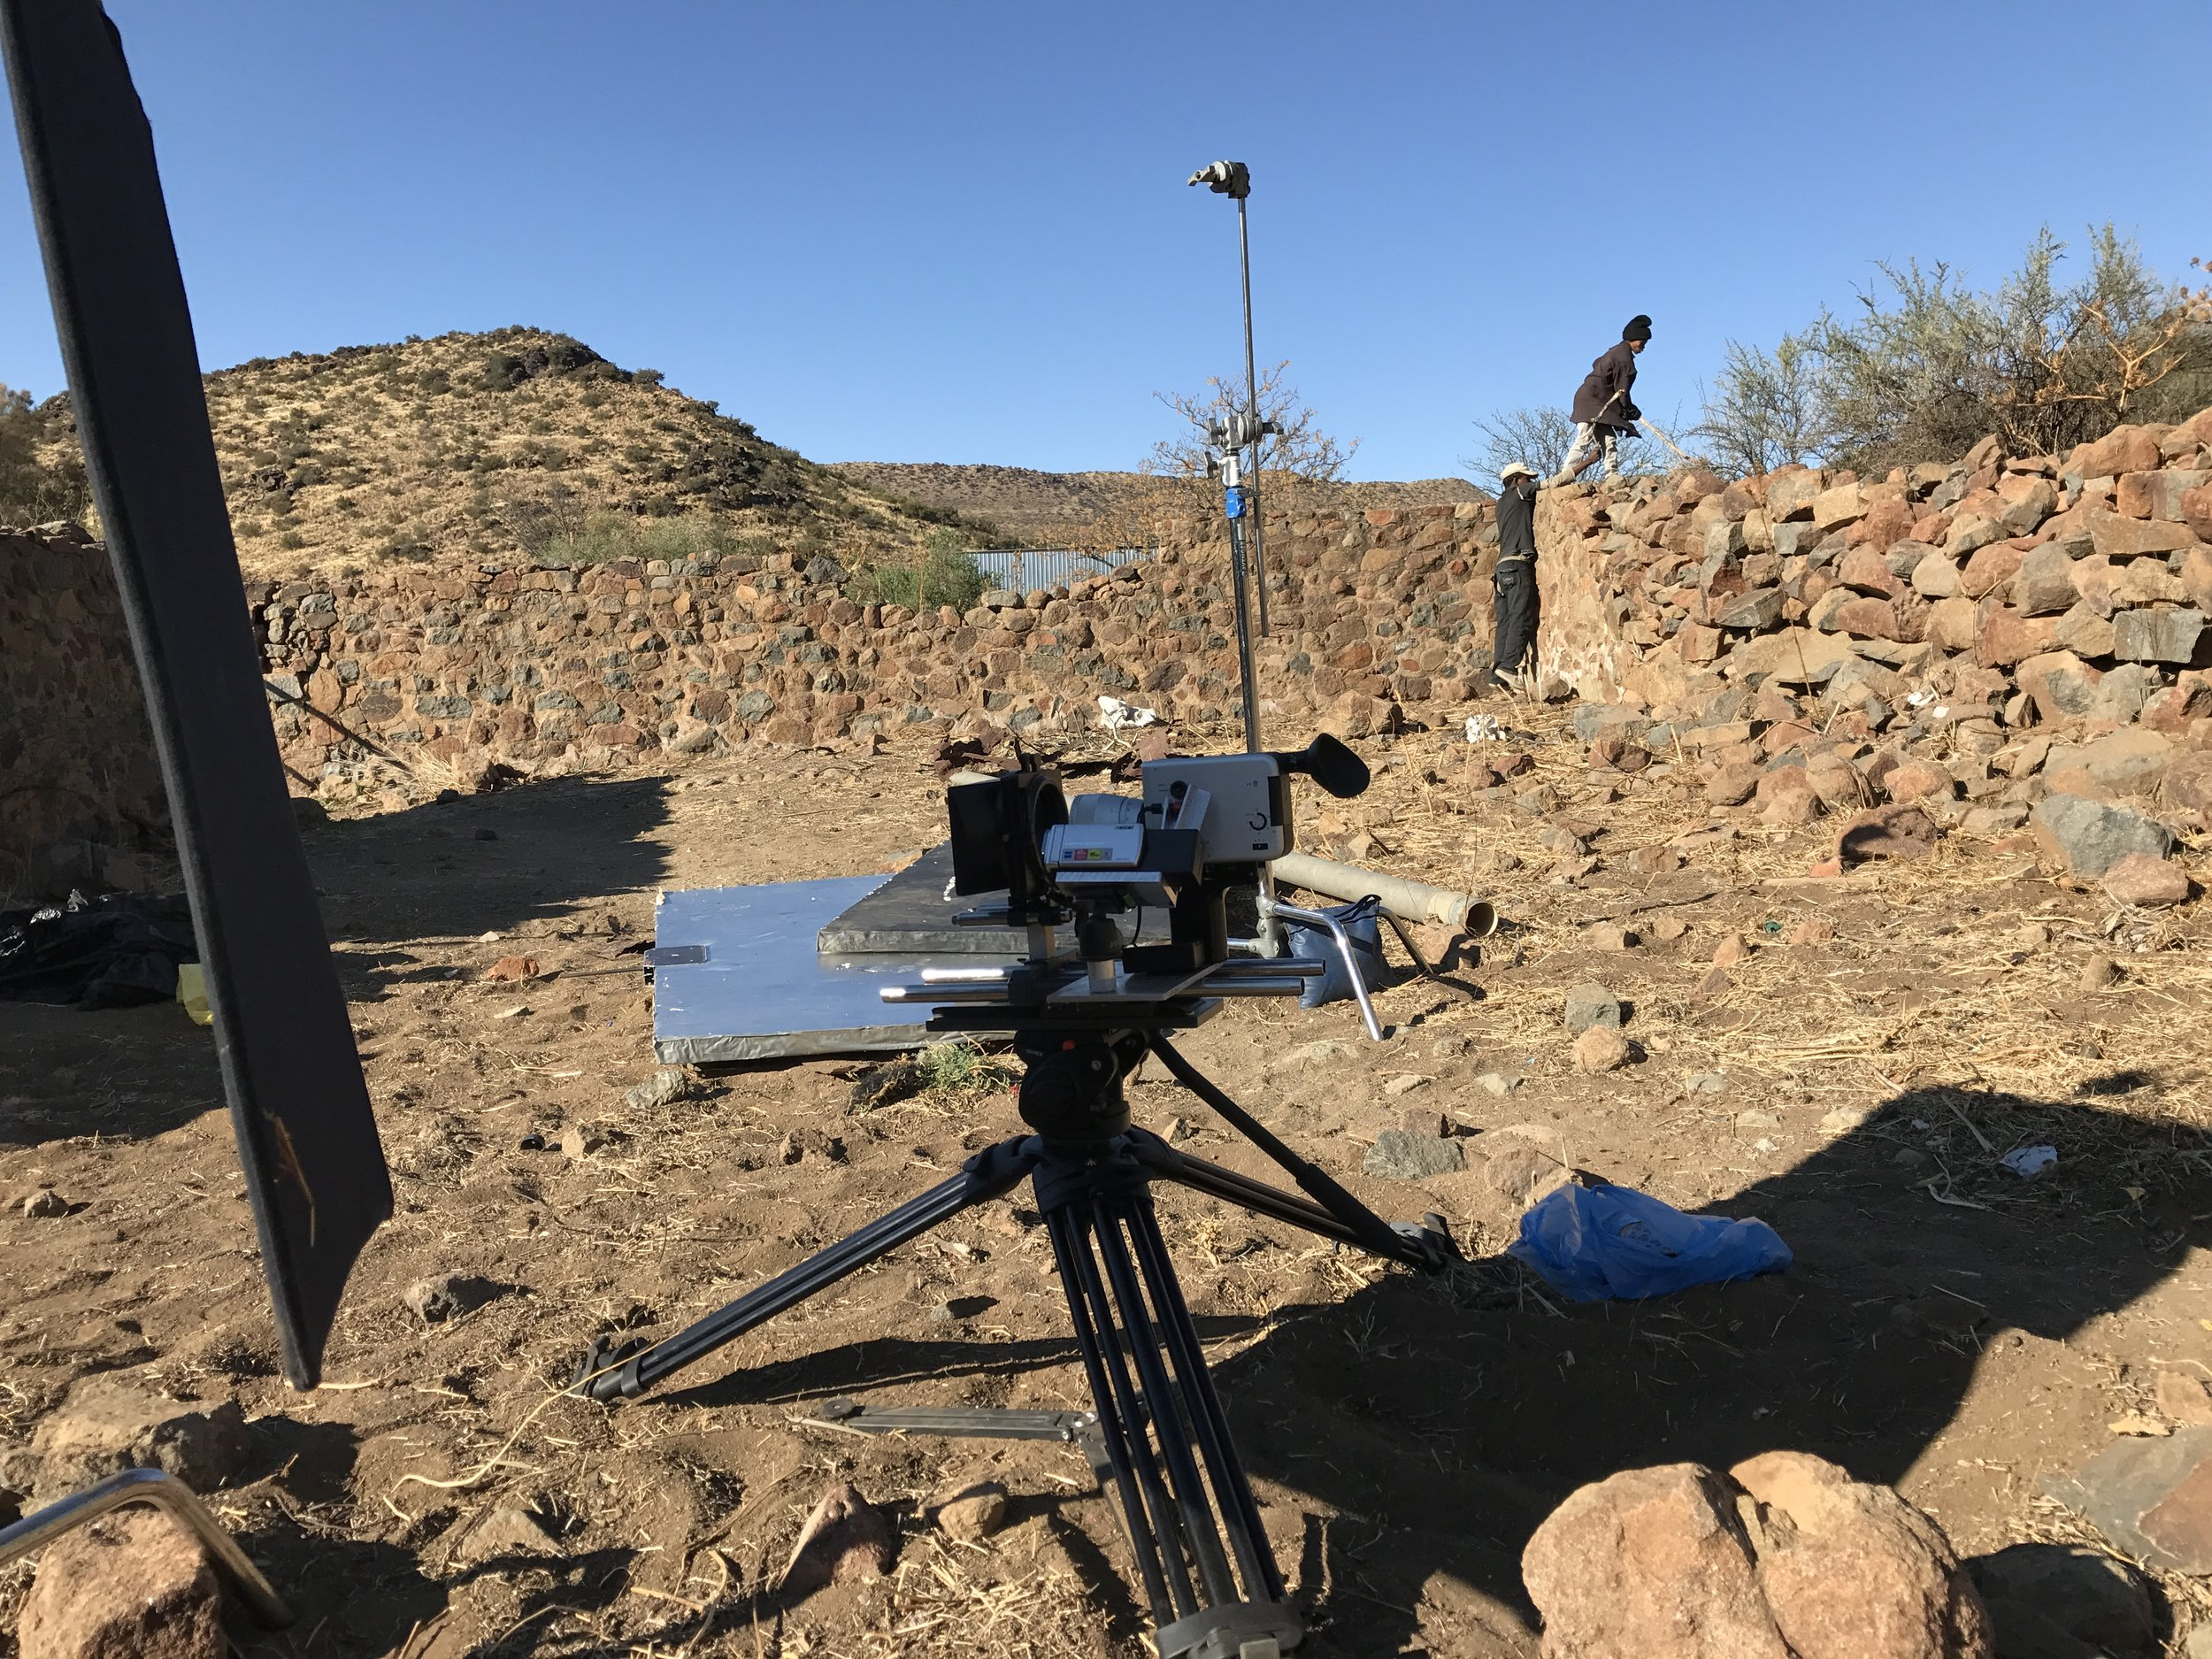 on location, about 800 km from cape town